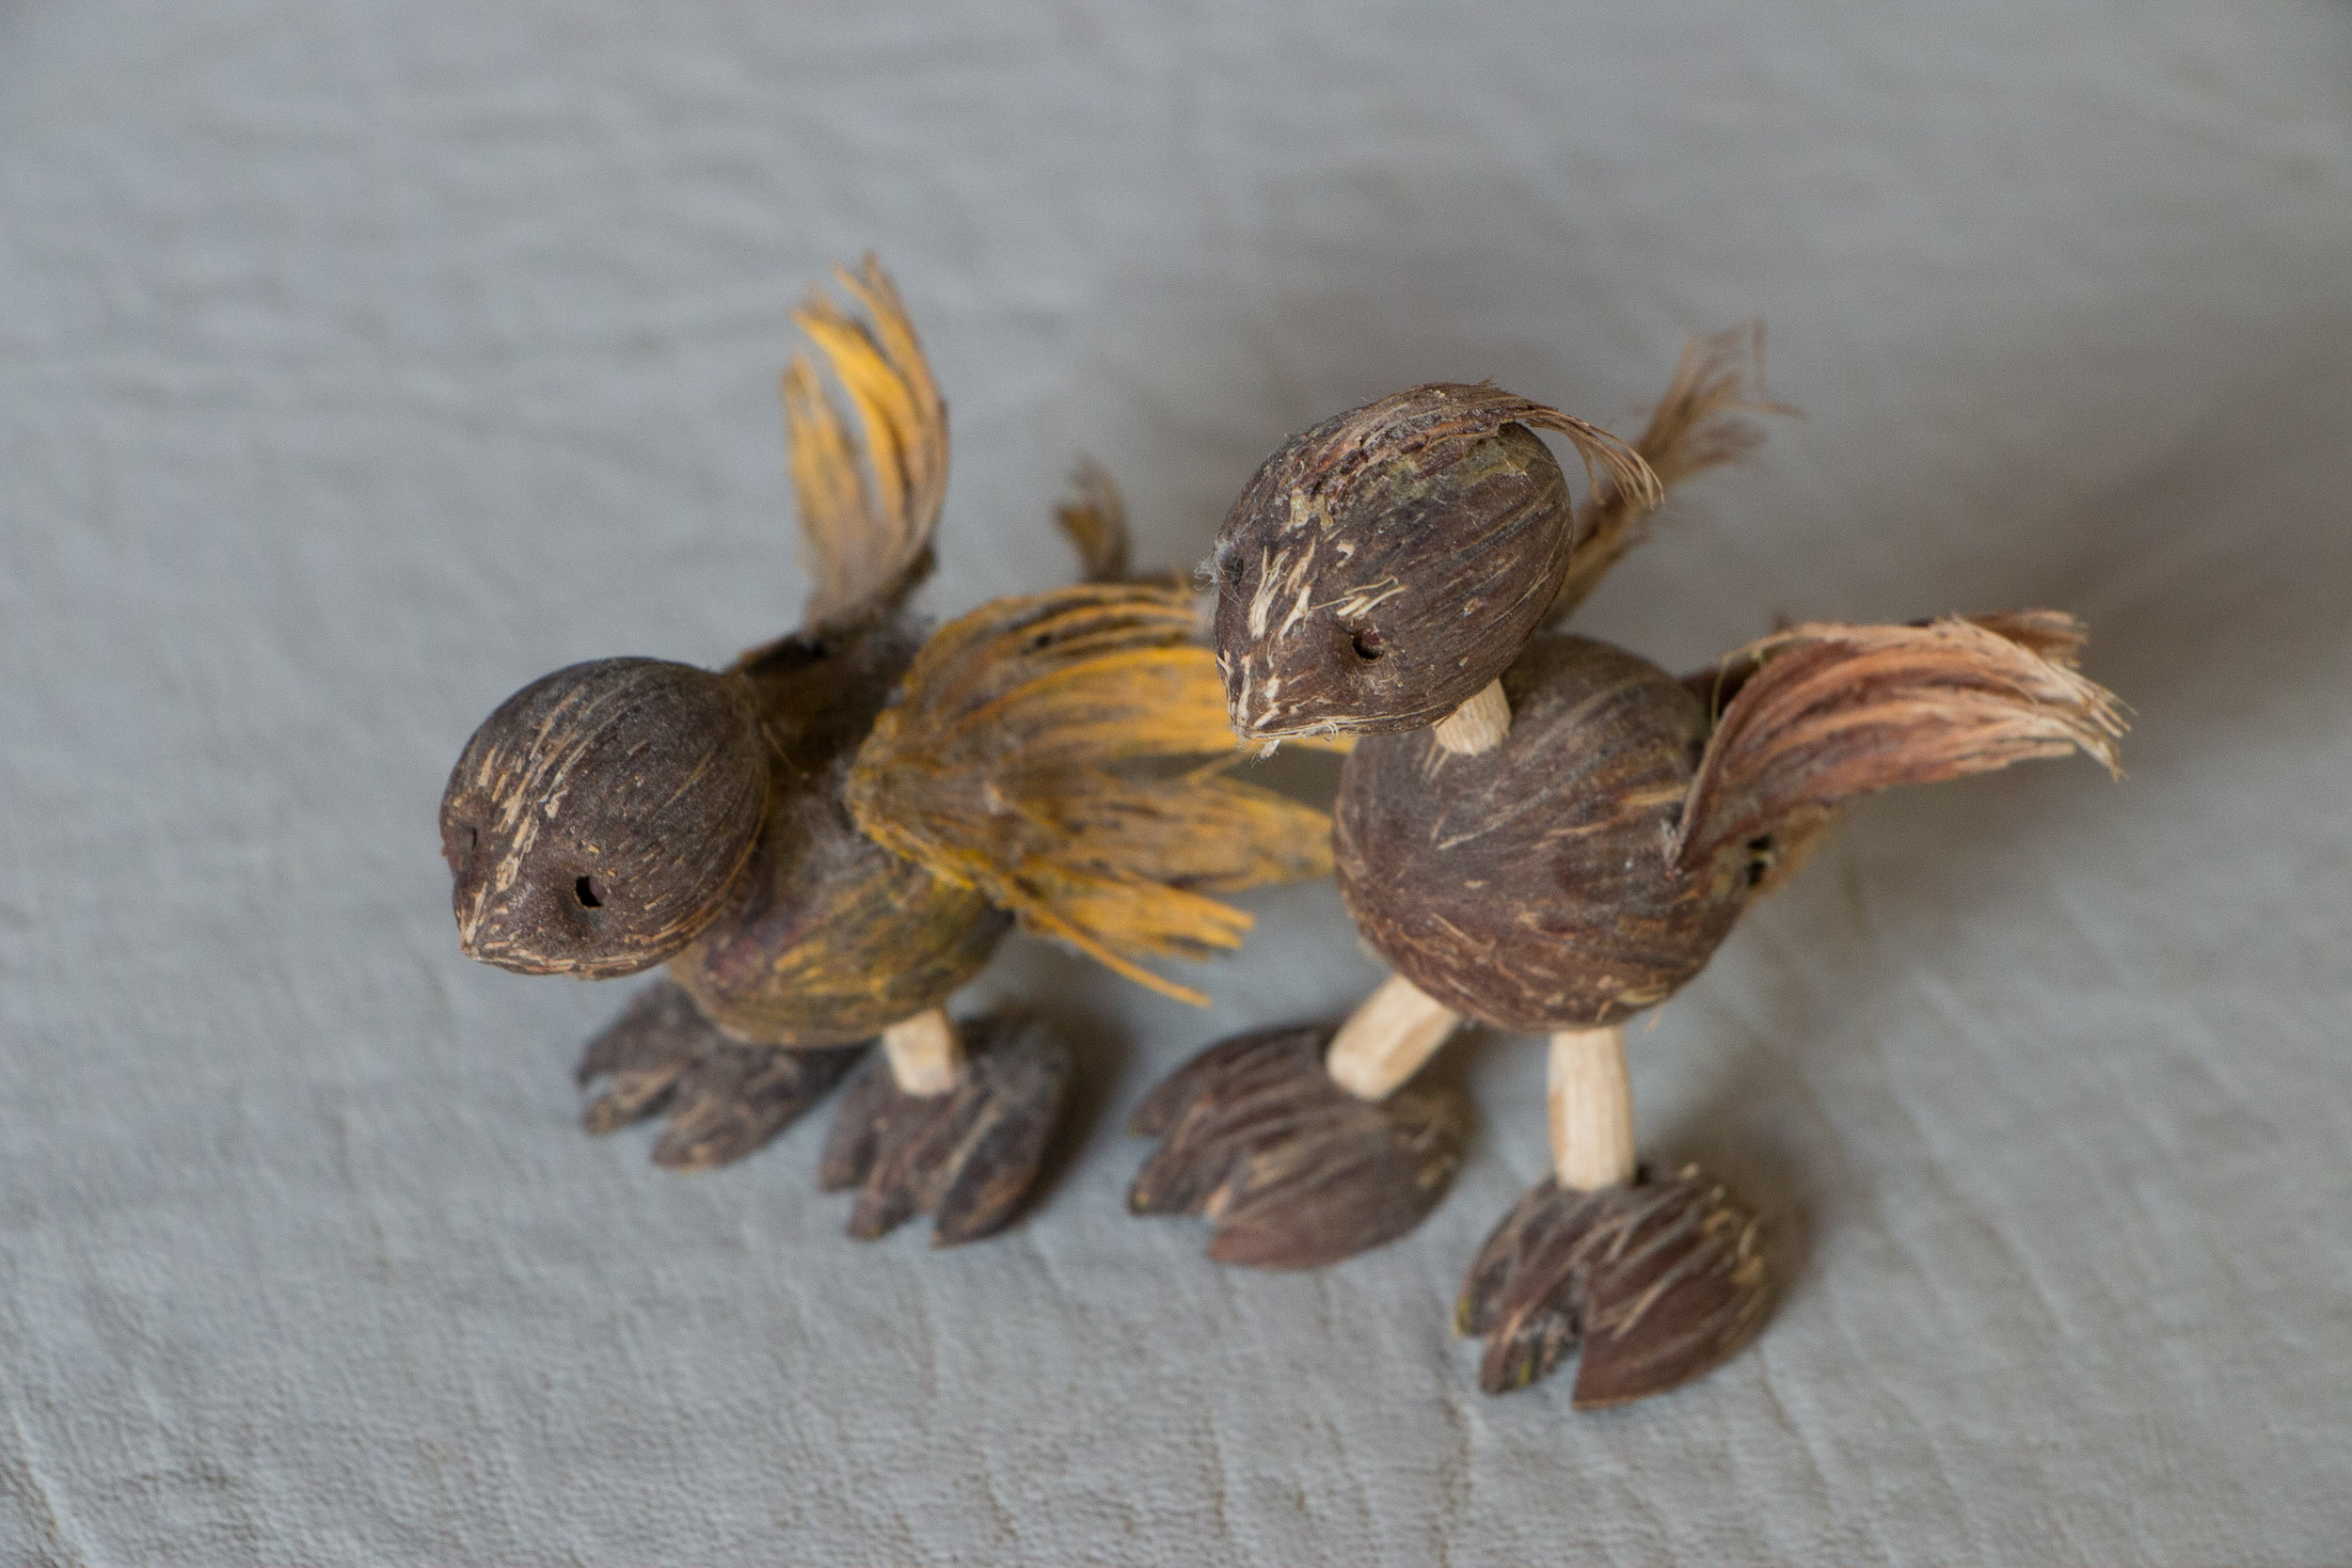 Two little chicken made of licuri nuts, a gift that I received from Carine Rubinho and her dad while doing fieldwork in Serrinha, Bahia, Brazil